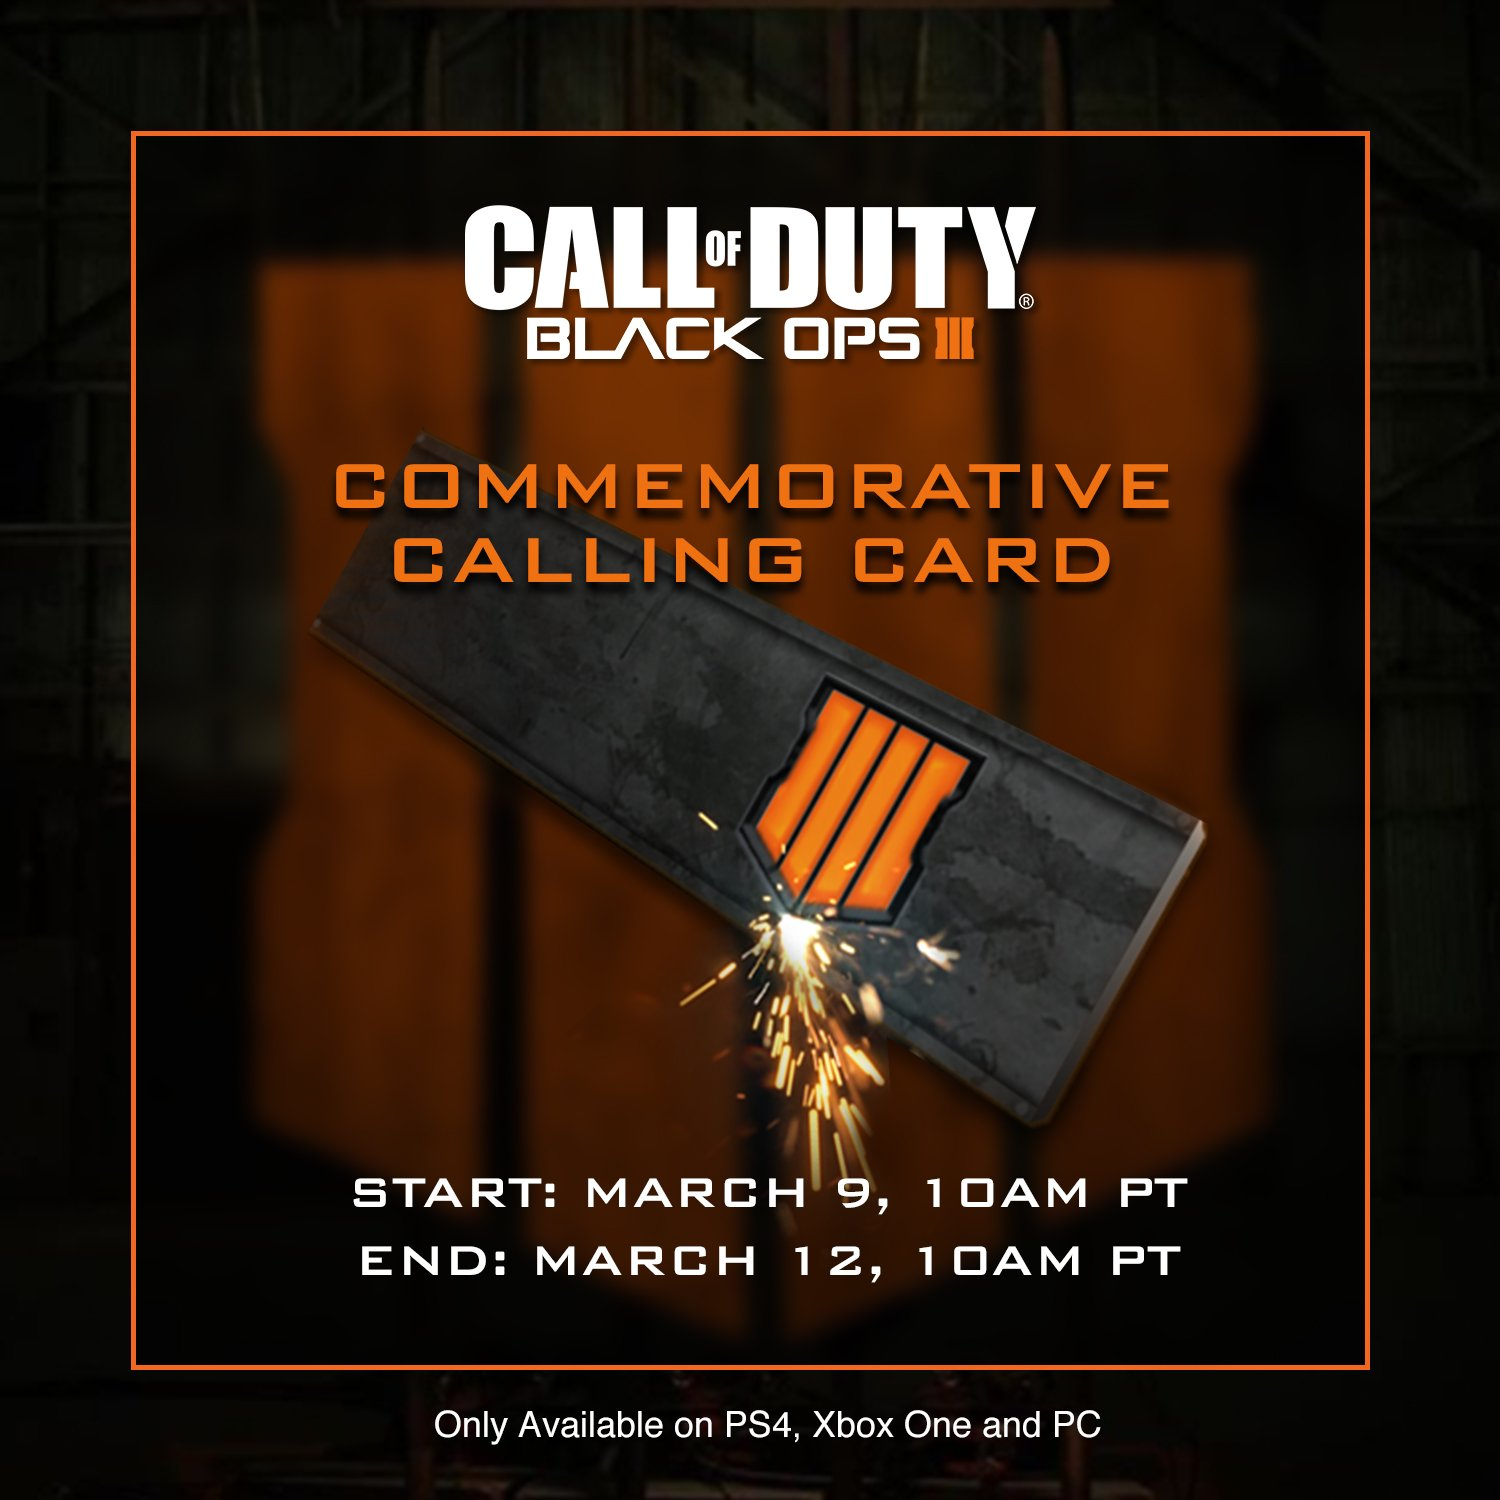 log into black ops 3 to receive a free black ops 4 calling card by